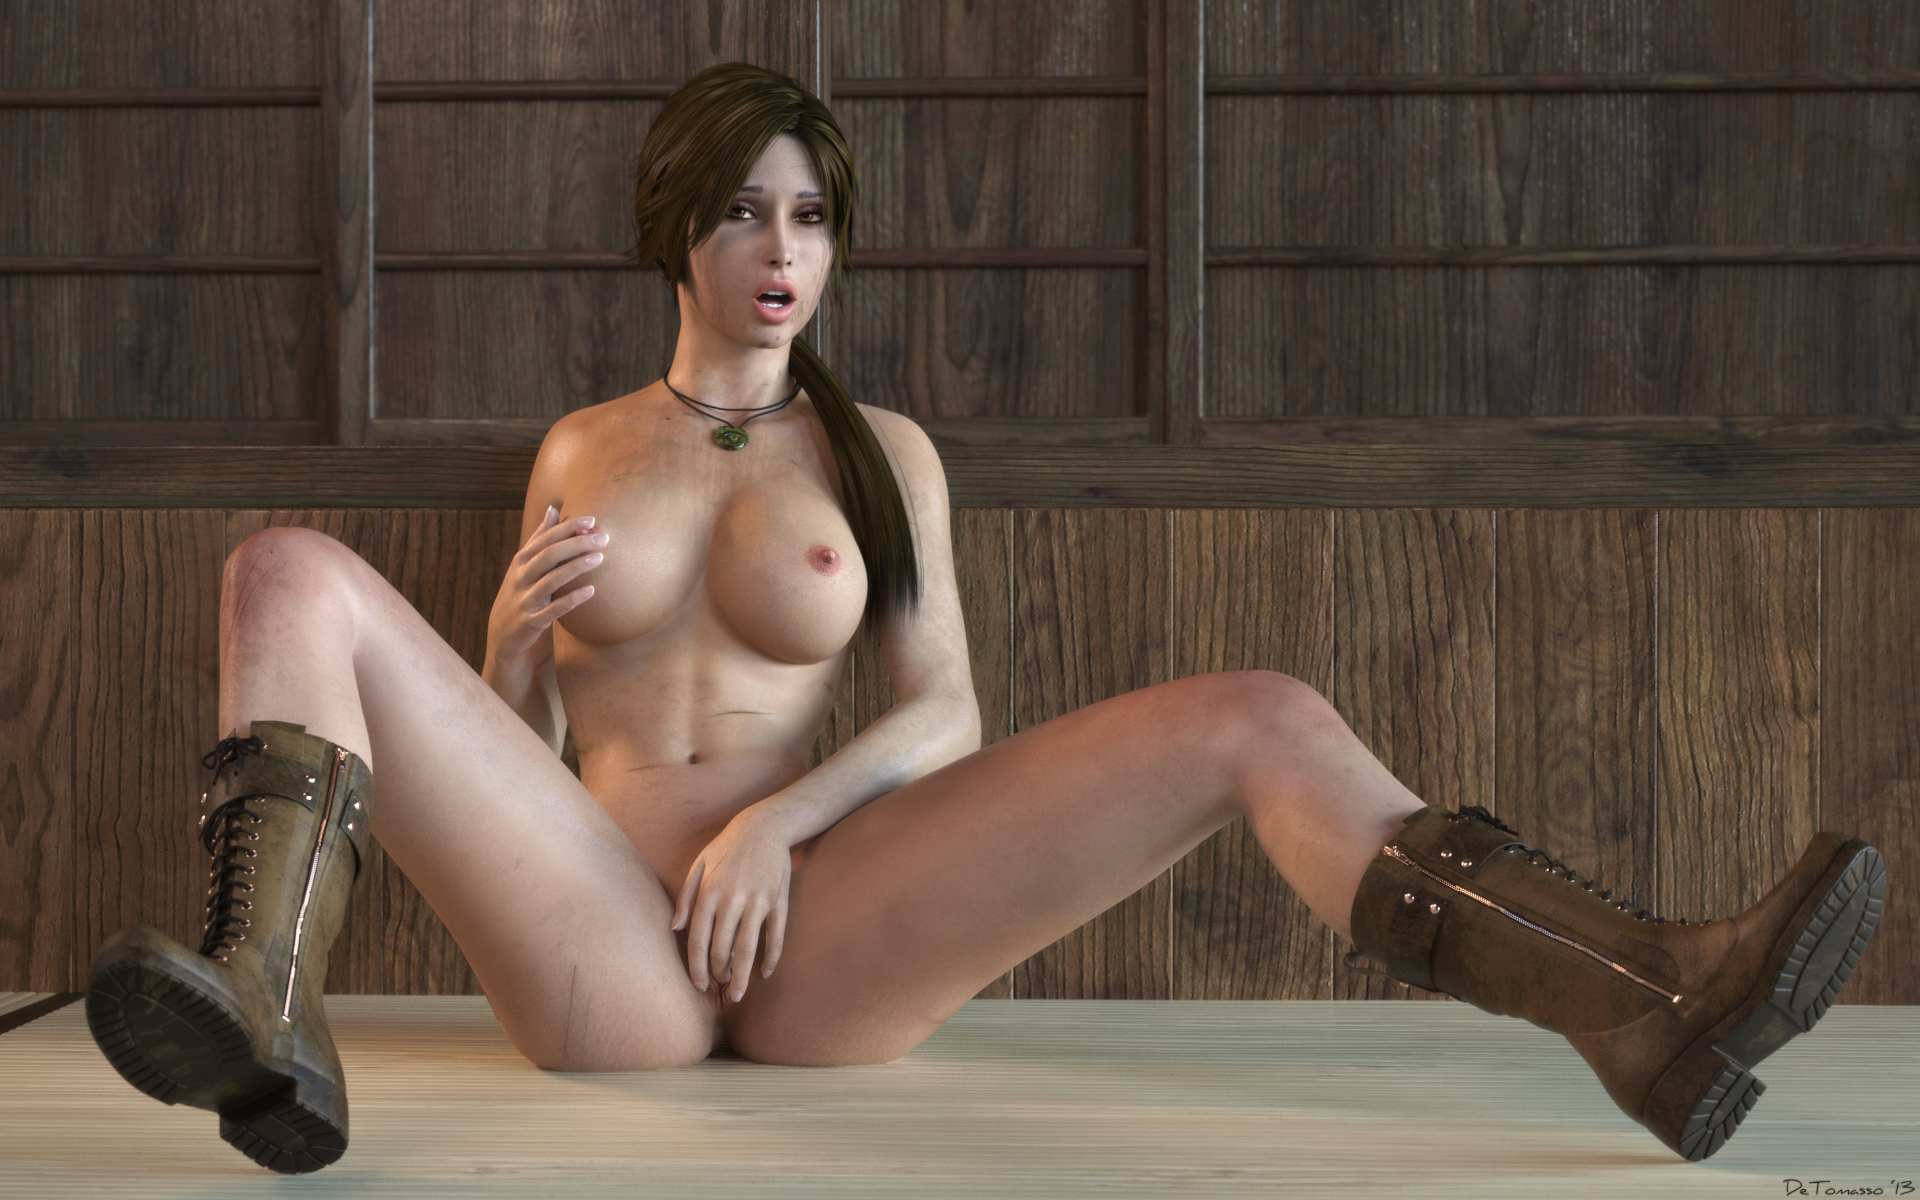 Lara rip nude for the high res  sex tube